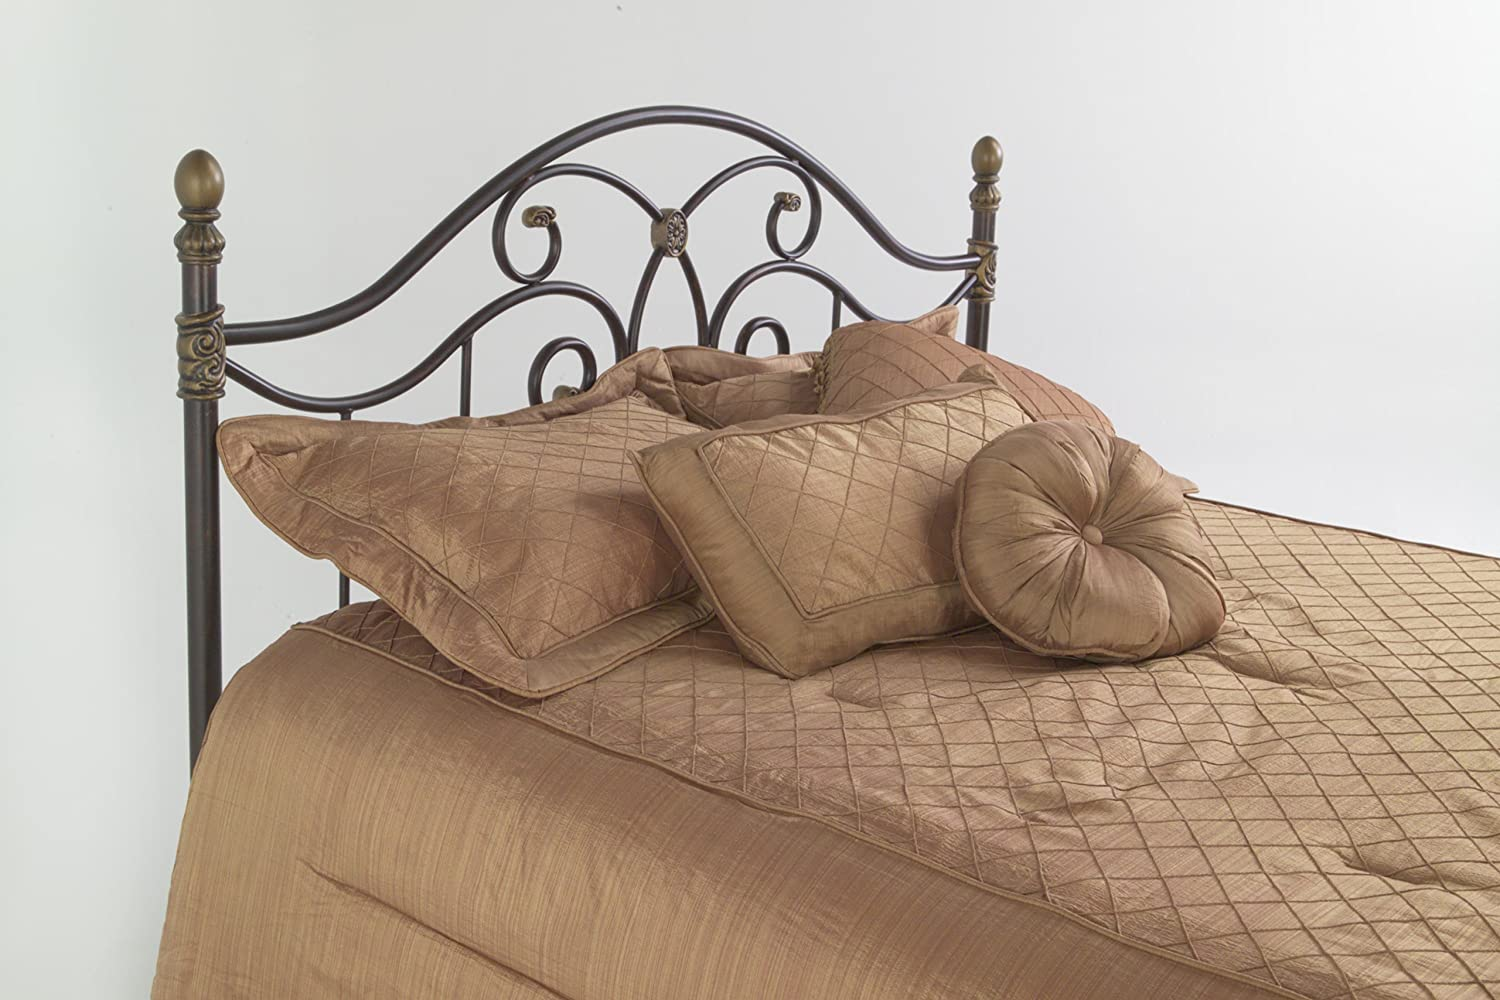 Dynasty Headboard with Arched Metal Grill and Scalloped Finial Posts - Autumn Brown Finish - Full